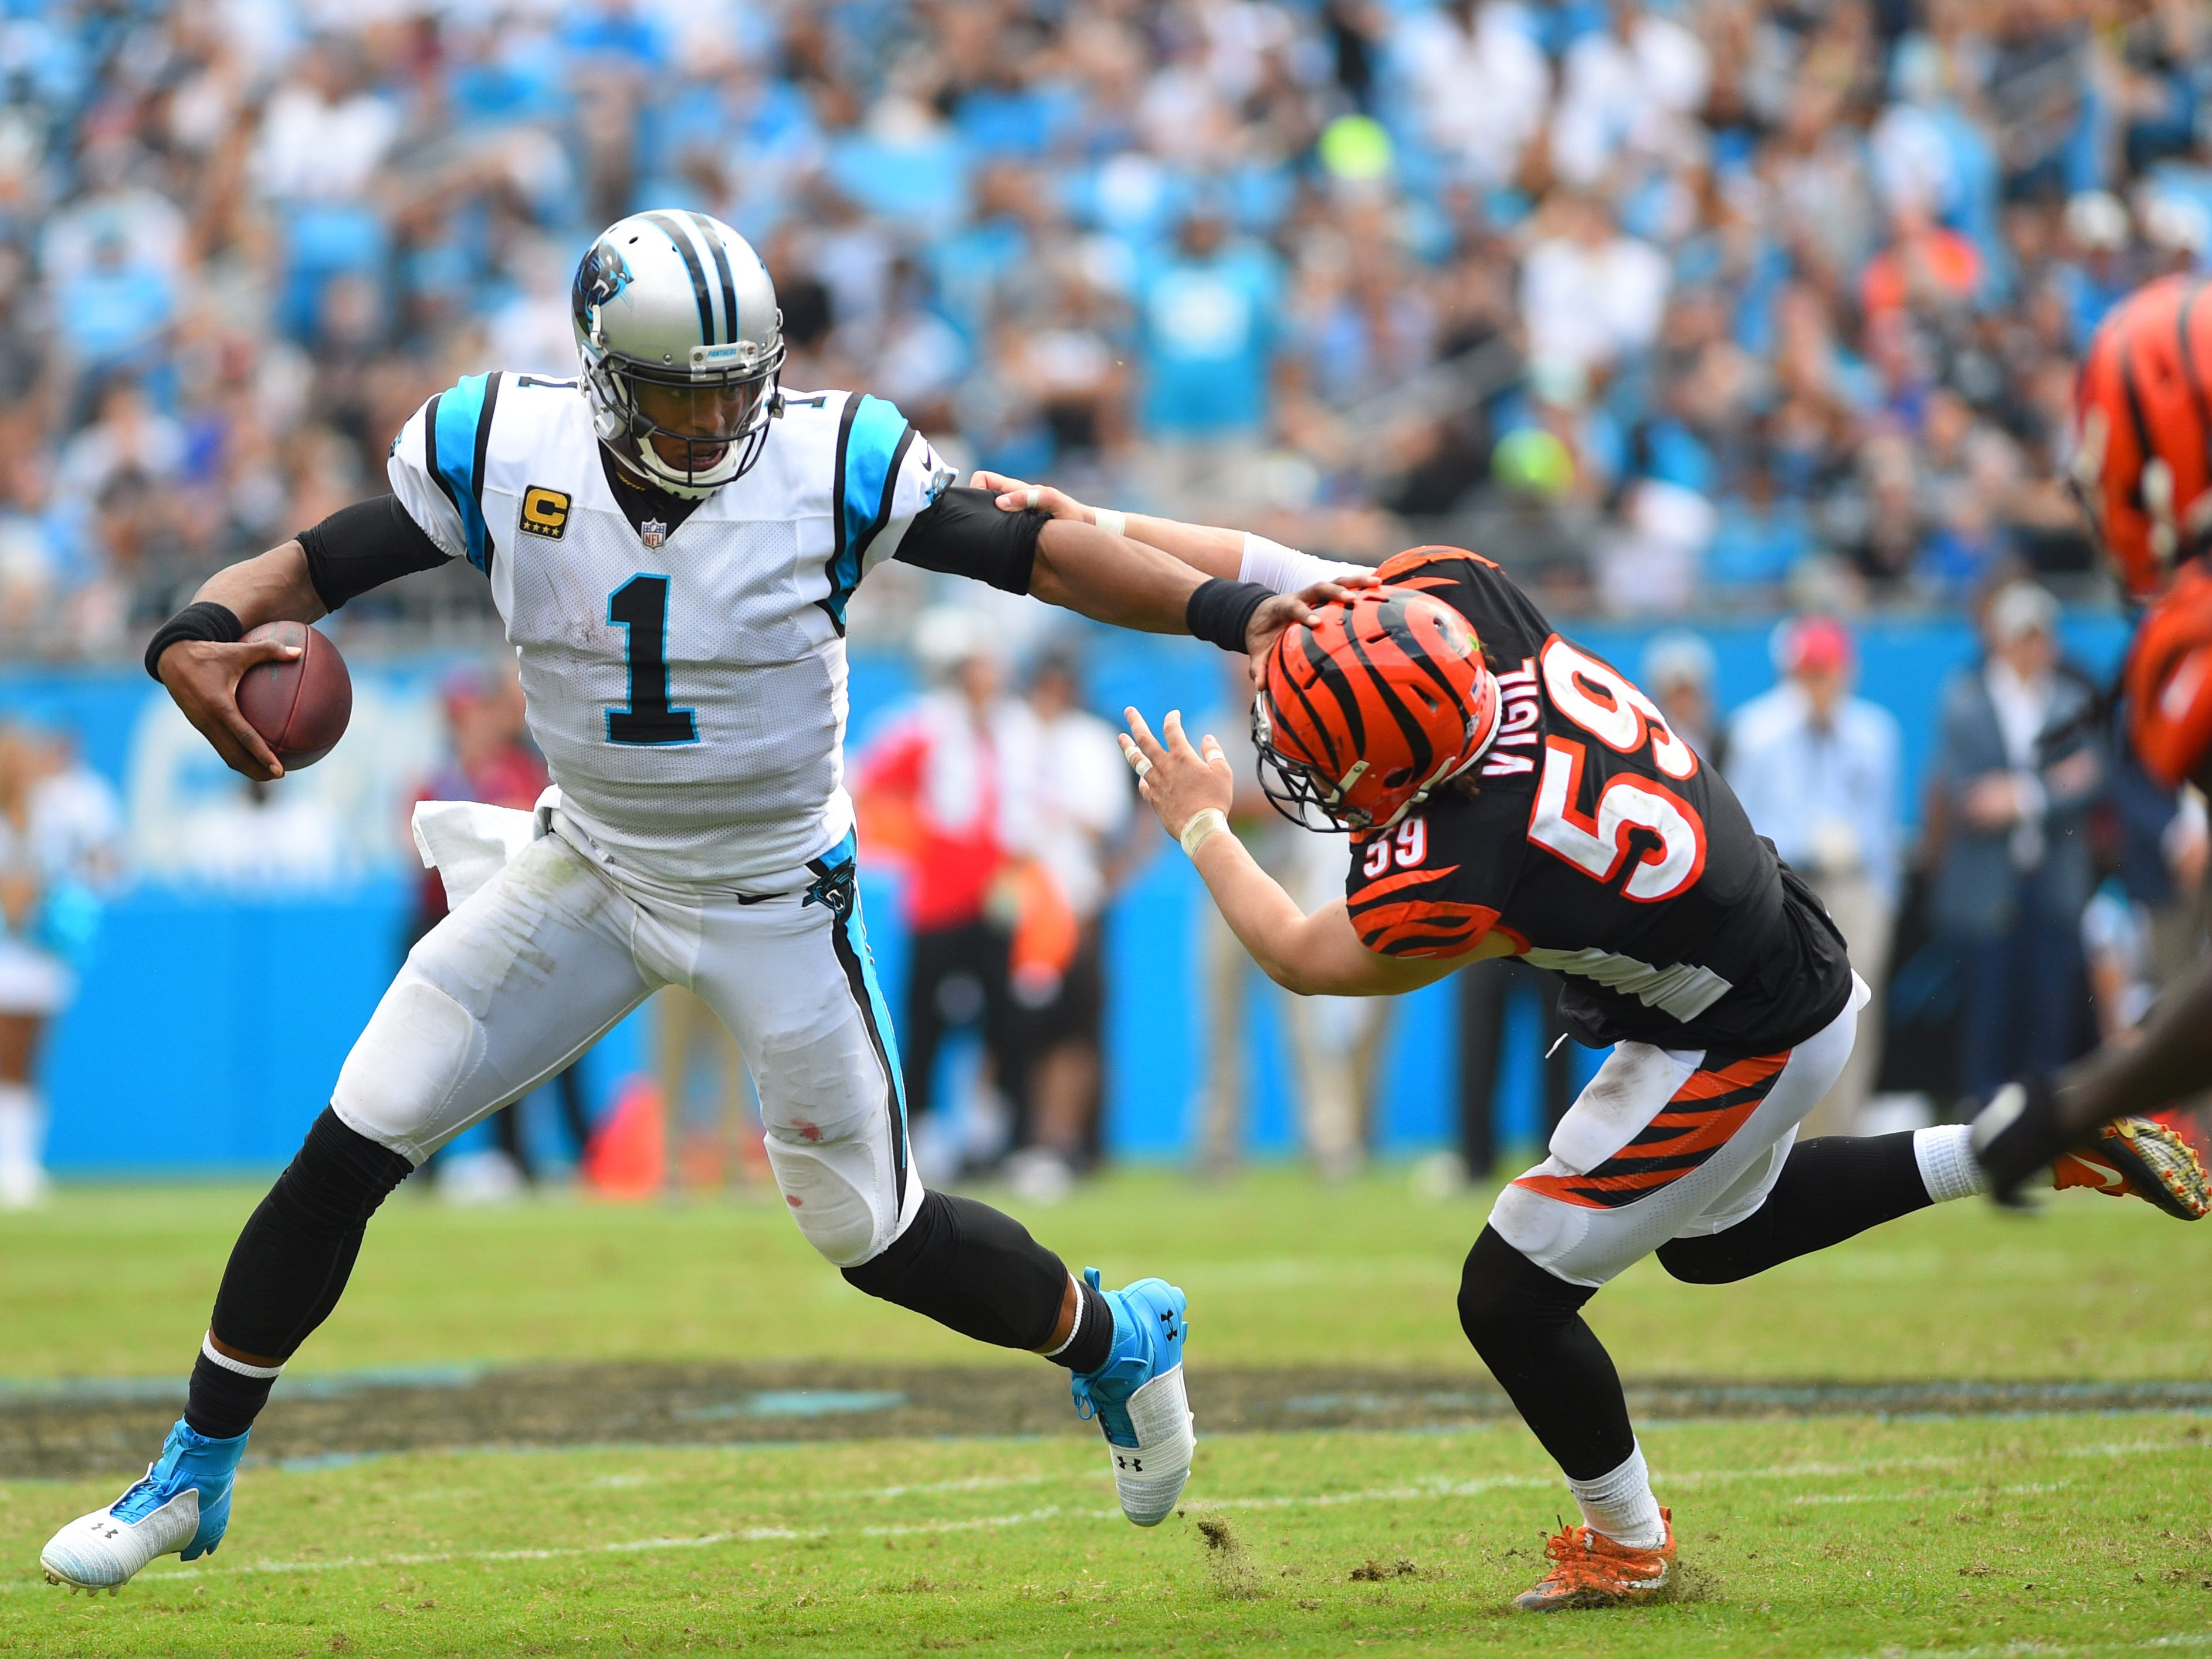 Sep 23, 2018; Charlotte, NC, USA; Carolina Panthers quarterback Cam Newton (1) with the ball as Cincinnati Bengals linebacker Nick Vigil (59) defends in the fourth quarter at Bank of America Stadium. Mandatory Credit: Bob Donnan-USA TODAY Sports